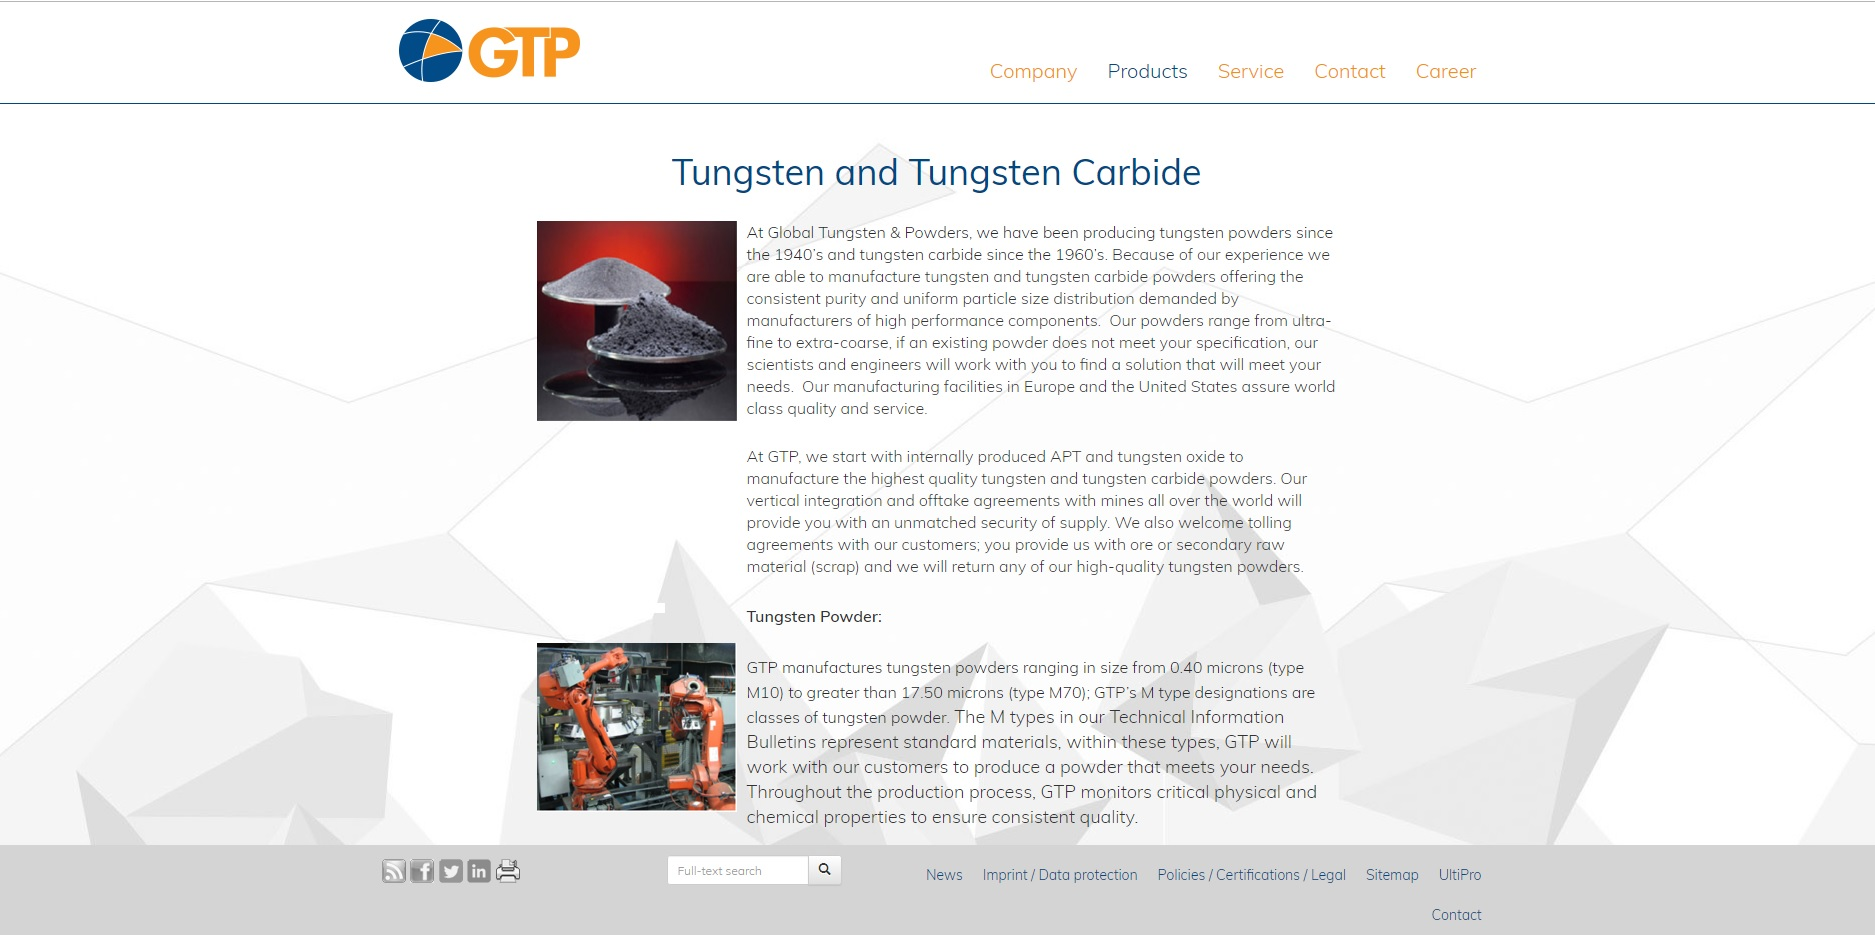 Global Tungsten & Powders